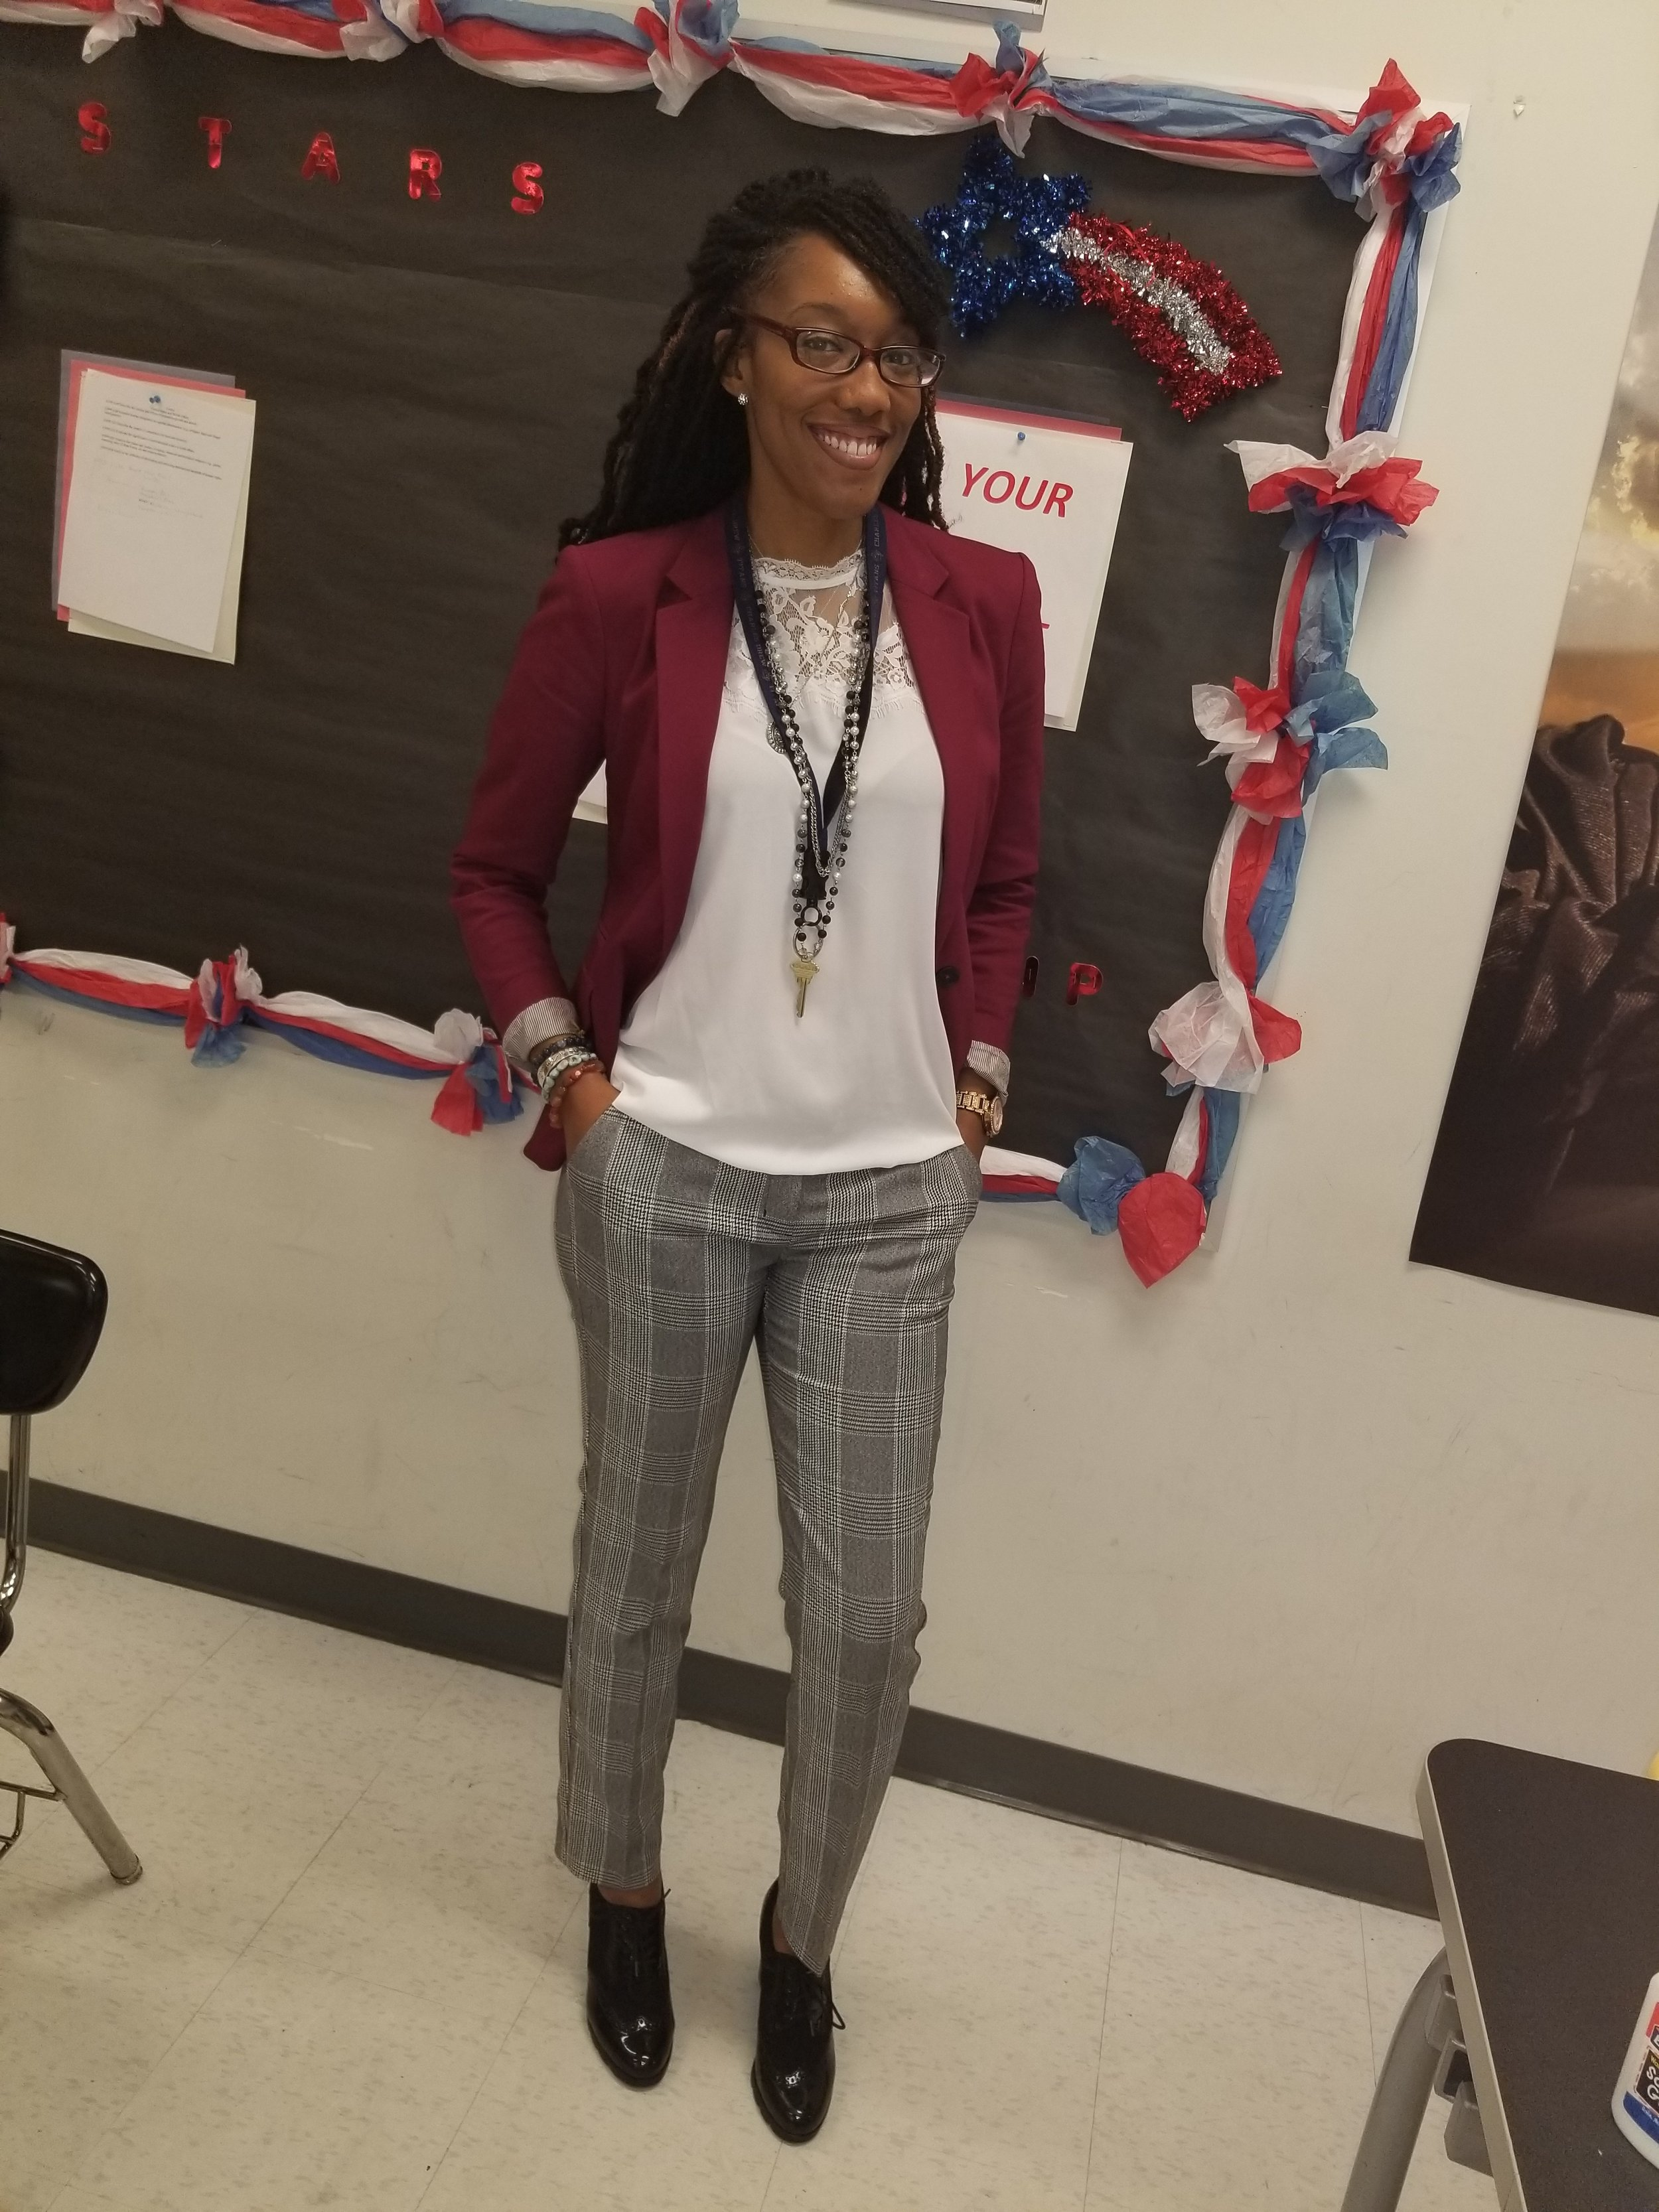 She is now one of the Sponsors for the school's chapter of the National Beta Club and is also the school's Ambassador for the United Way. -